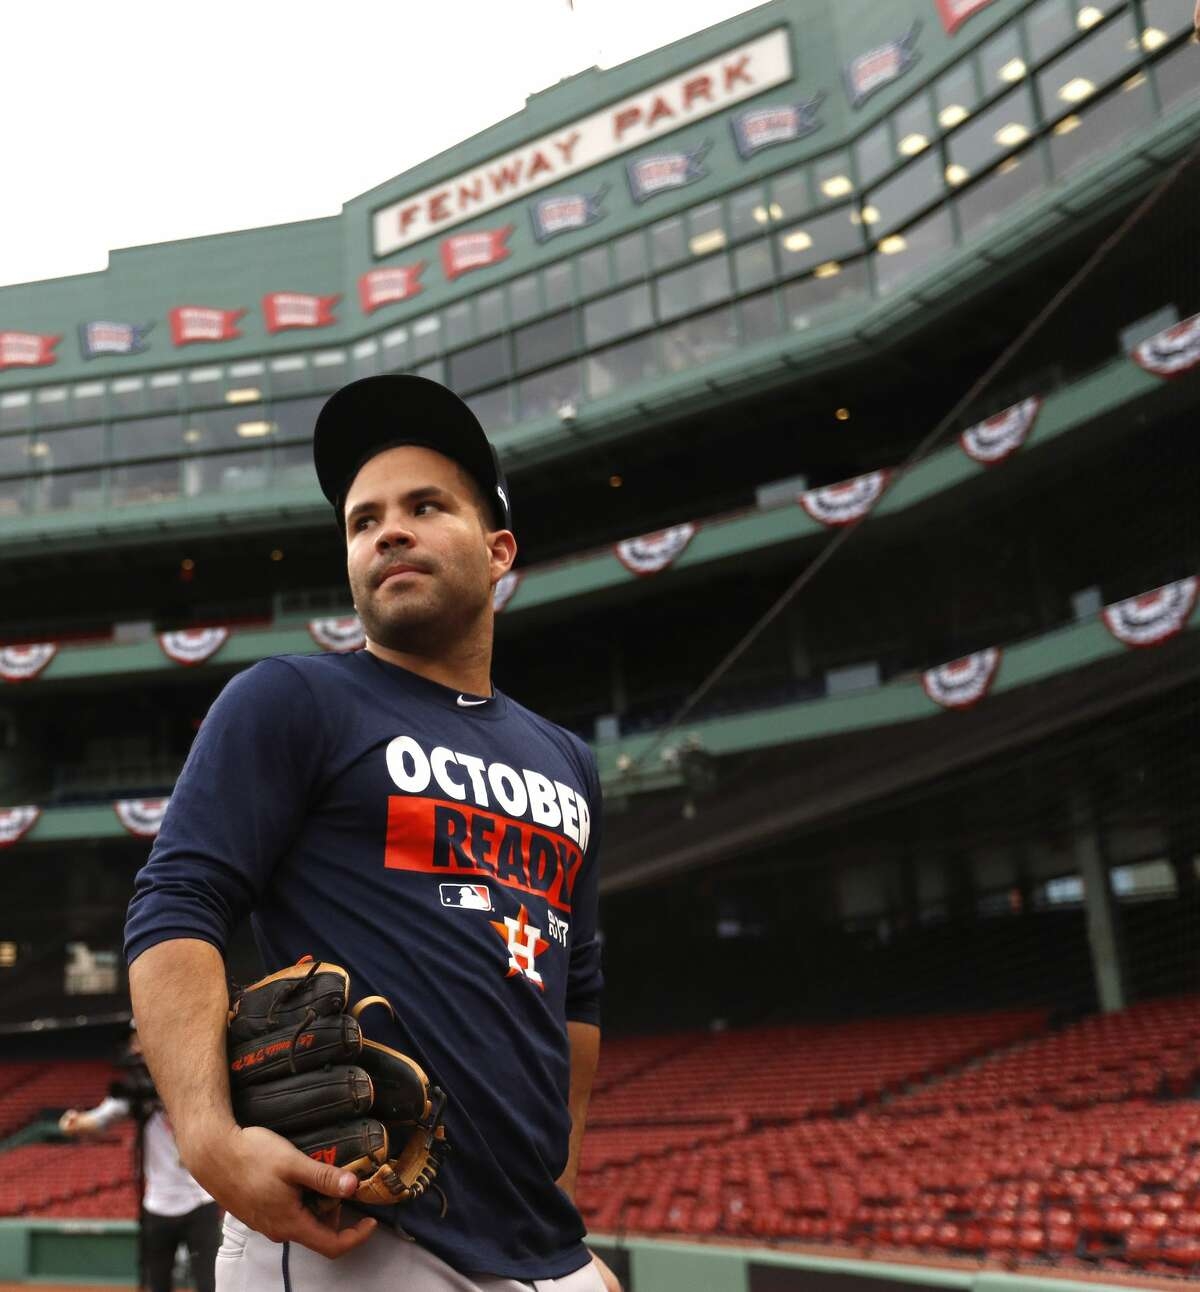 Houston Astros second baseman Jose Altuve during the Astros workout at Fenway Park, Saturday, Oct. 7, 2017, in Boston , ahead of Sunday's ALDS Game 3. ( Karen Warren / Houston Chronicle )